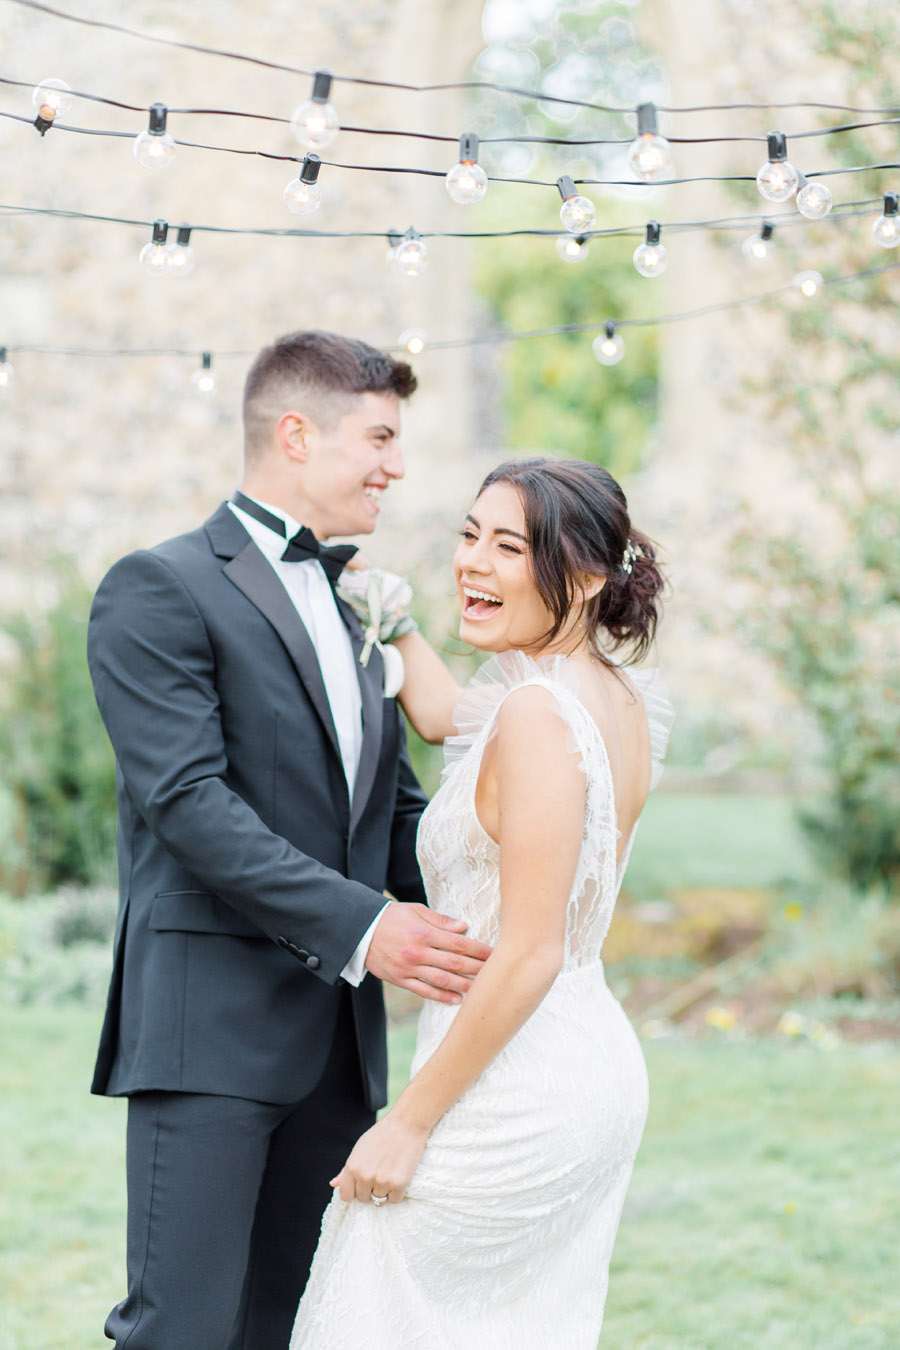 Romantic ethereal wedding styling ideas with Natalie Stevenson Photography (32)